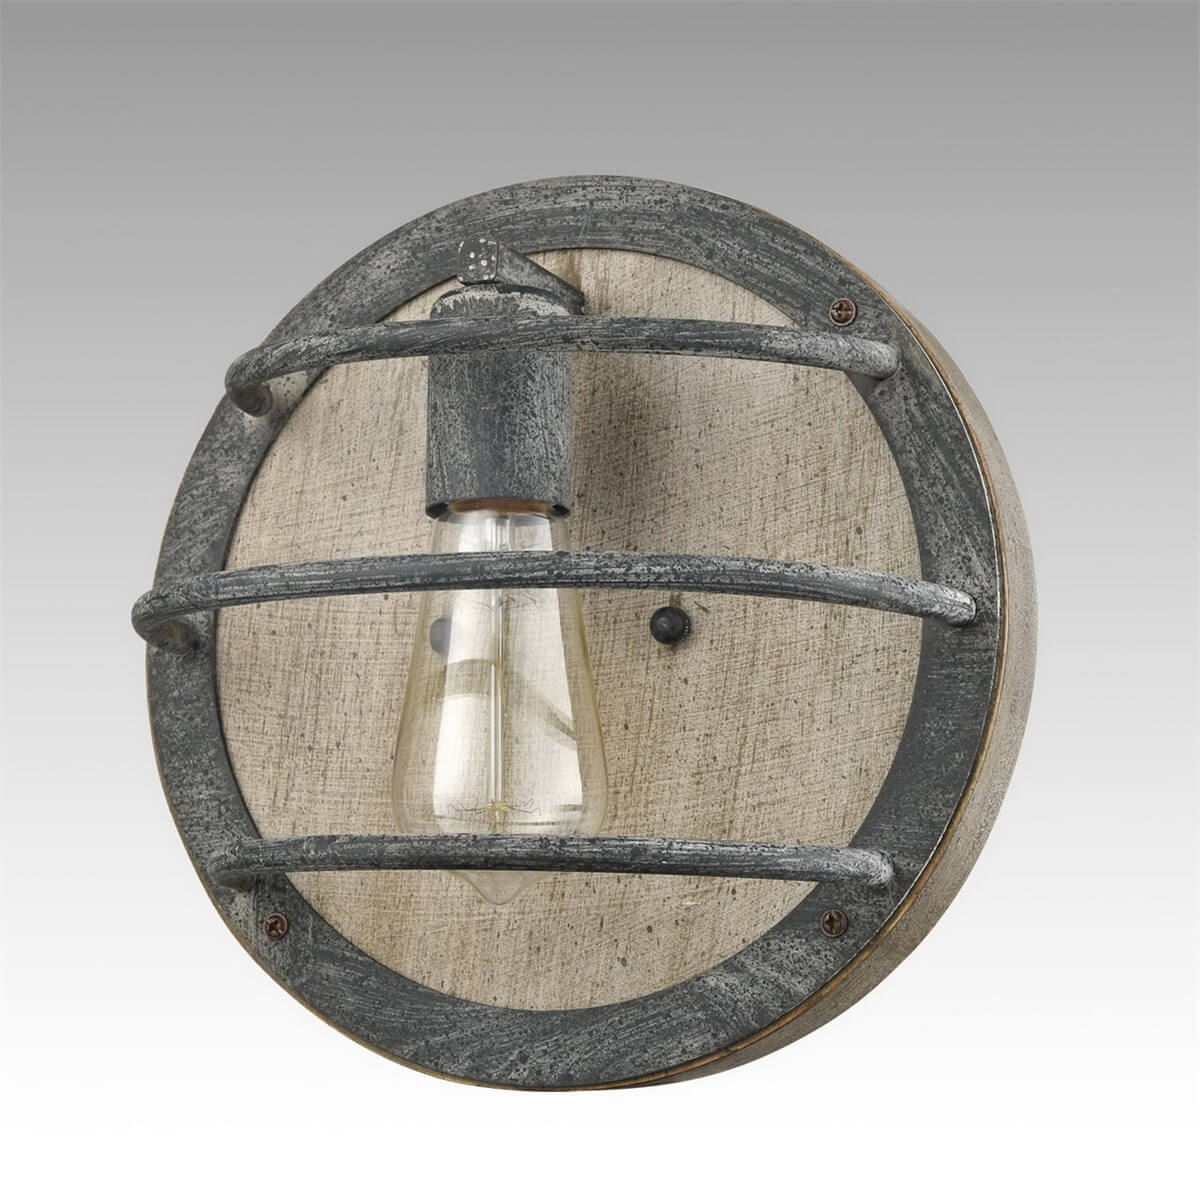 Rustic Wood Wall Sconce in Bluish Stained Finish